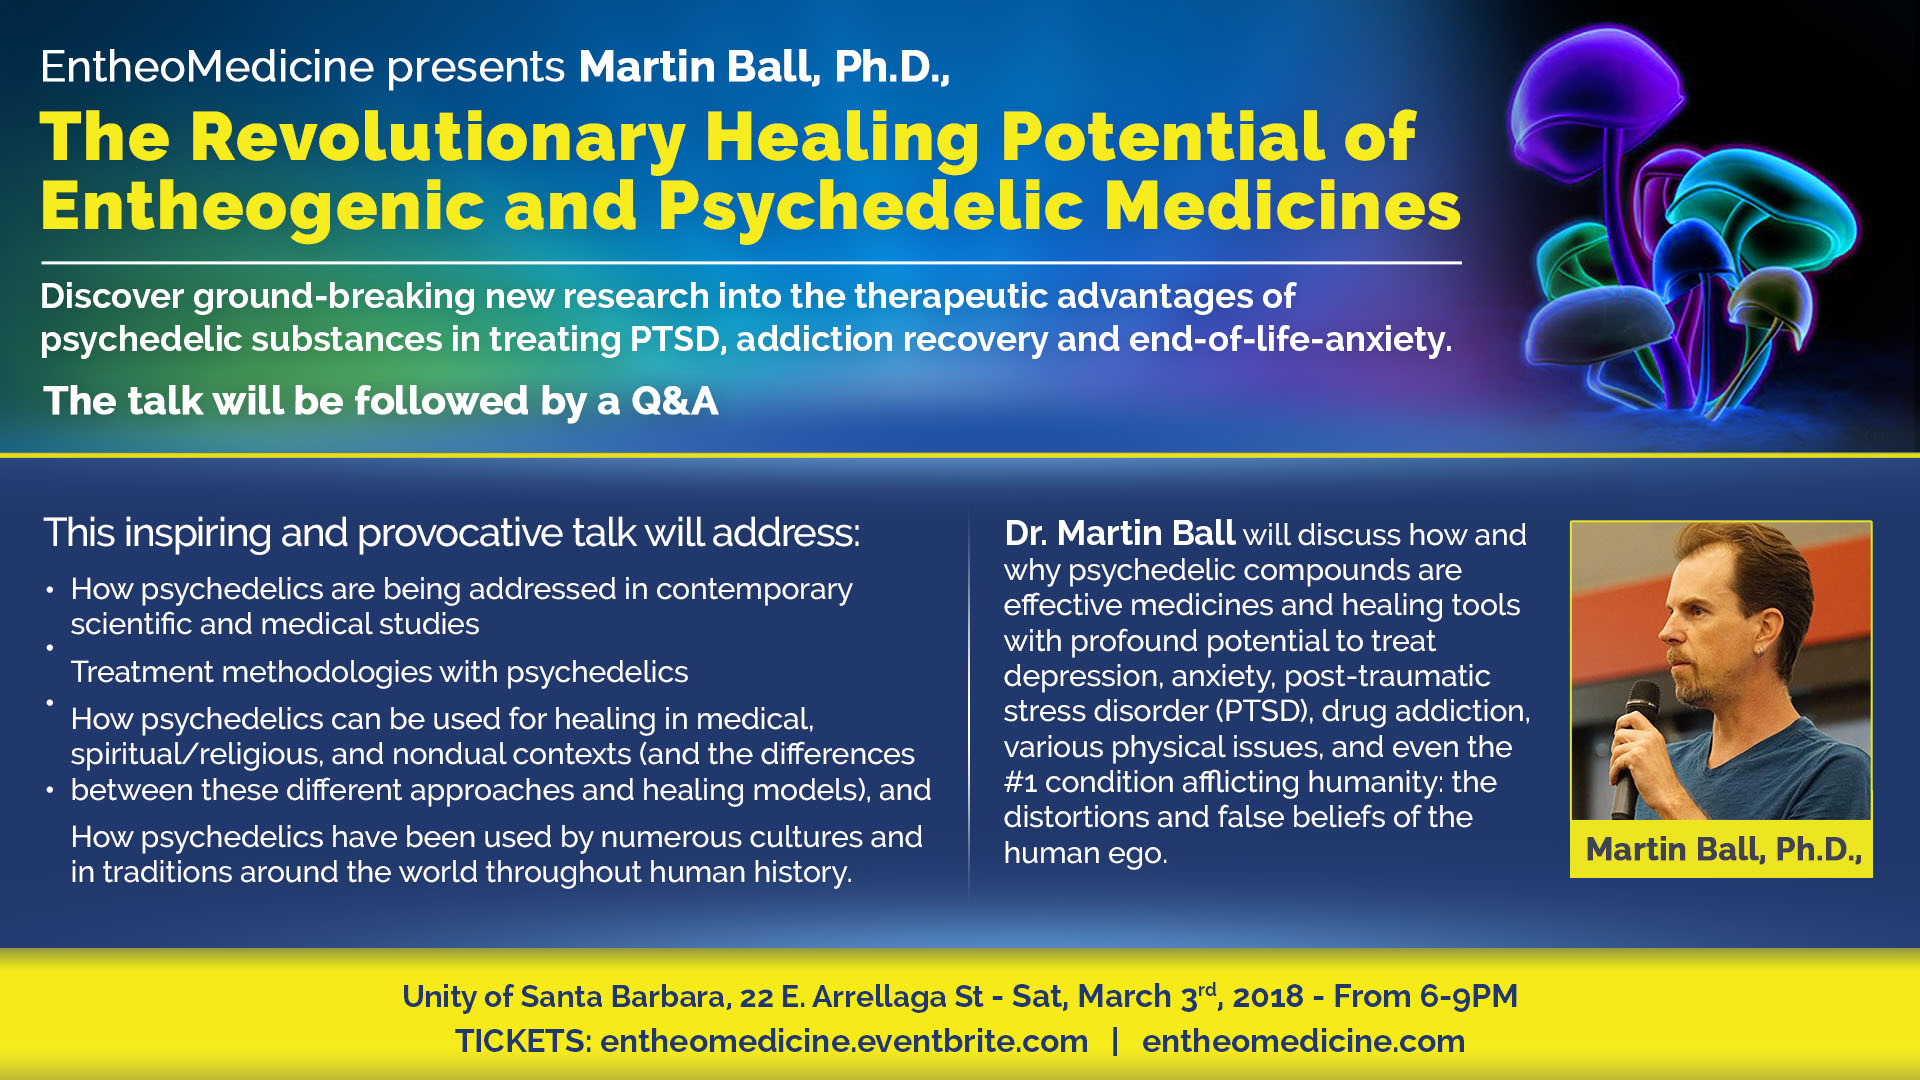 The RevolutionaryHealing Potential of Entheogenic and Psychedelic Medicines.